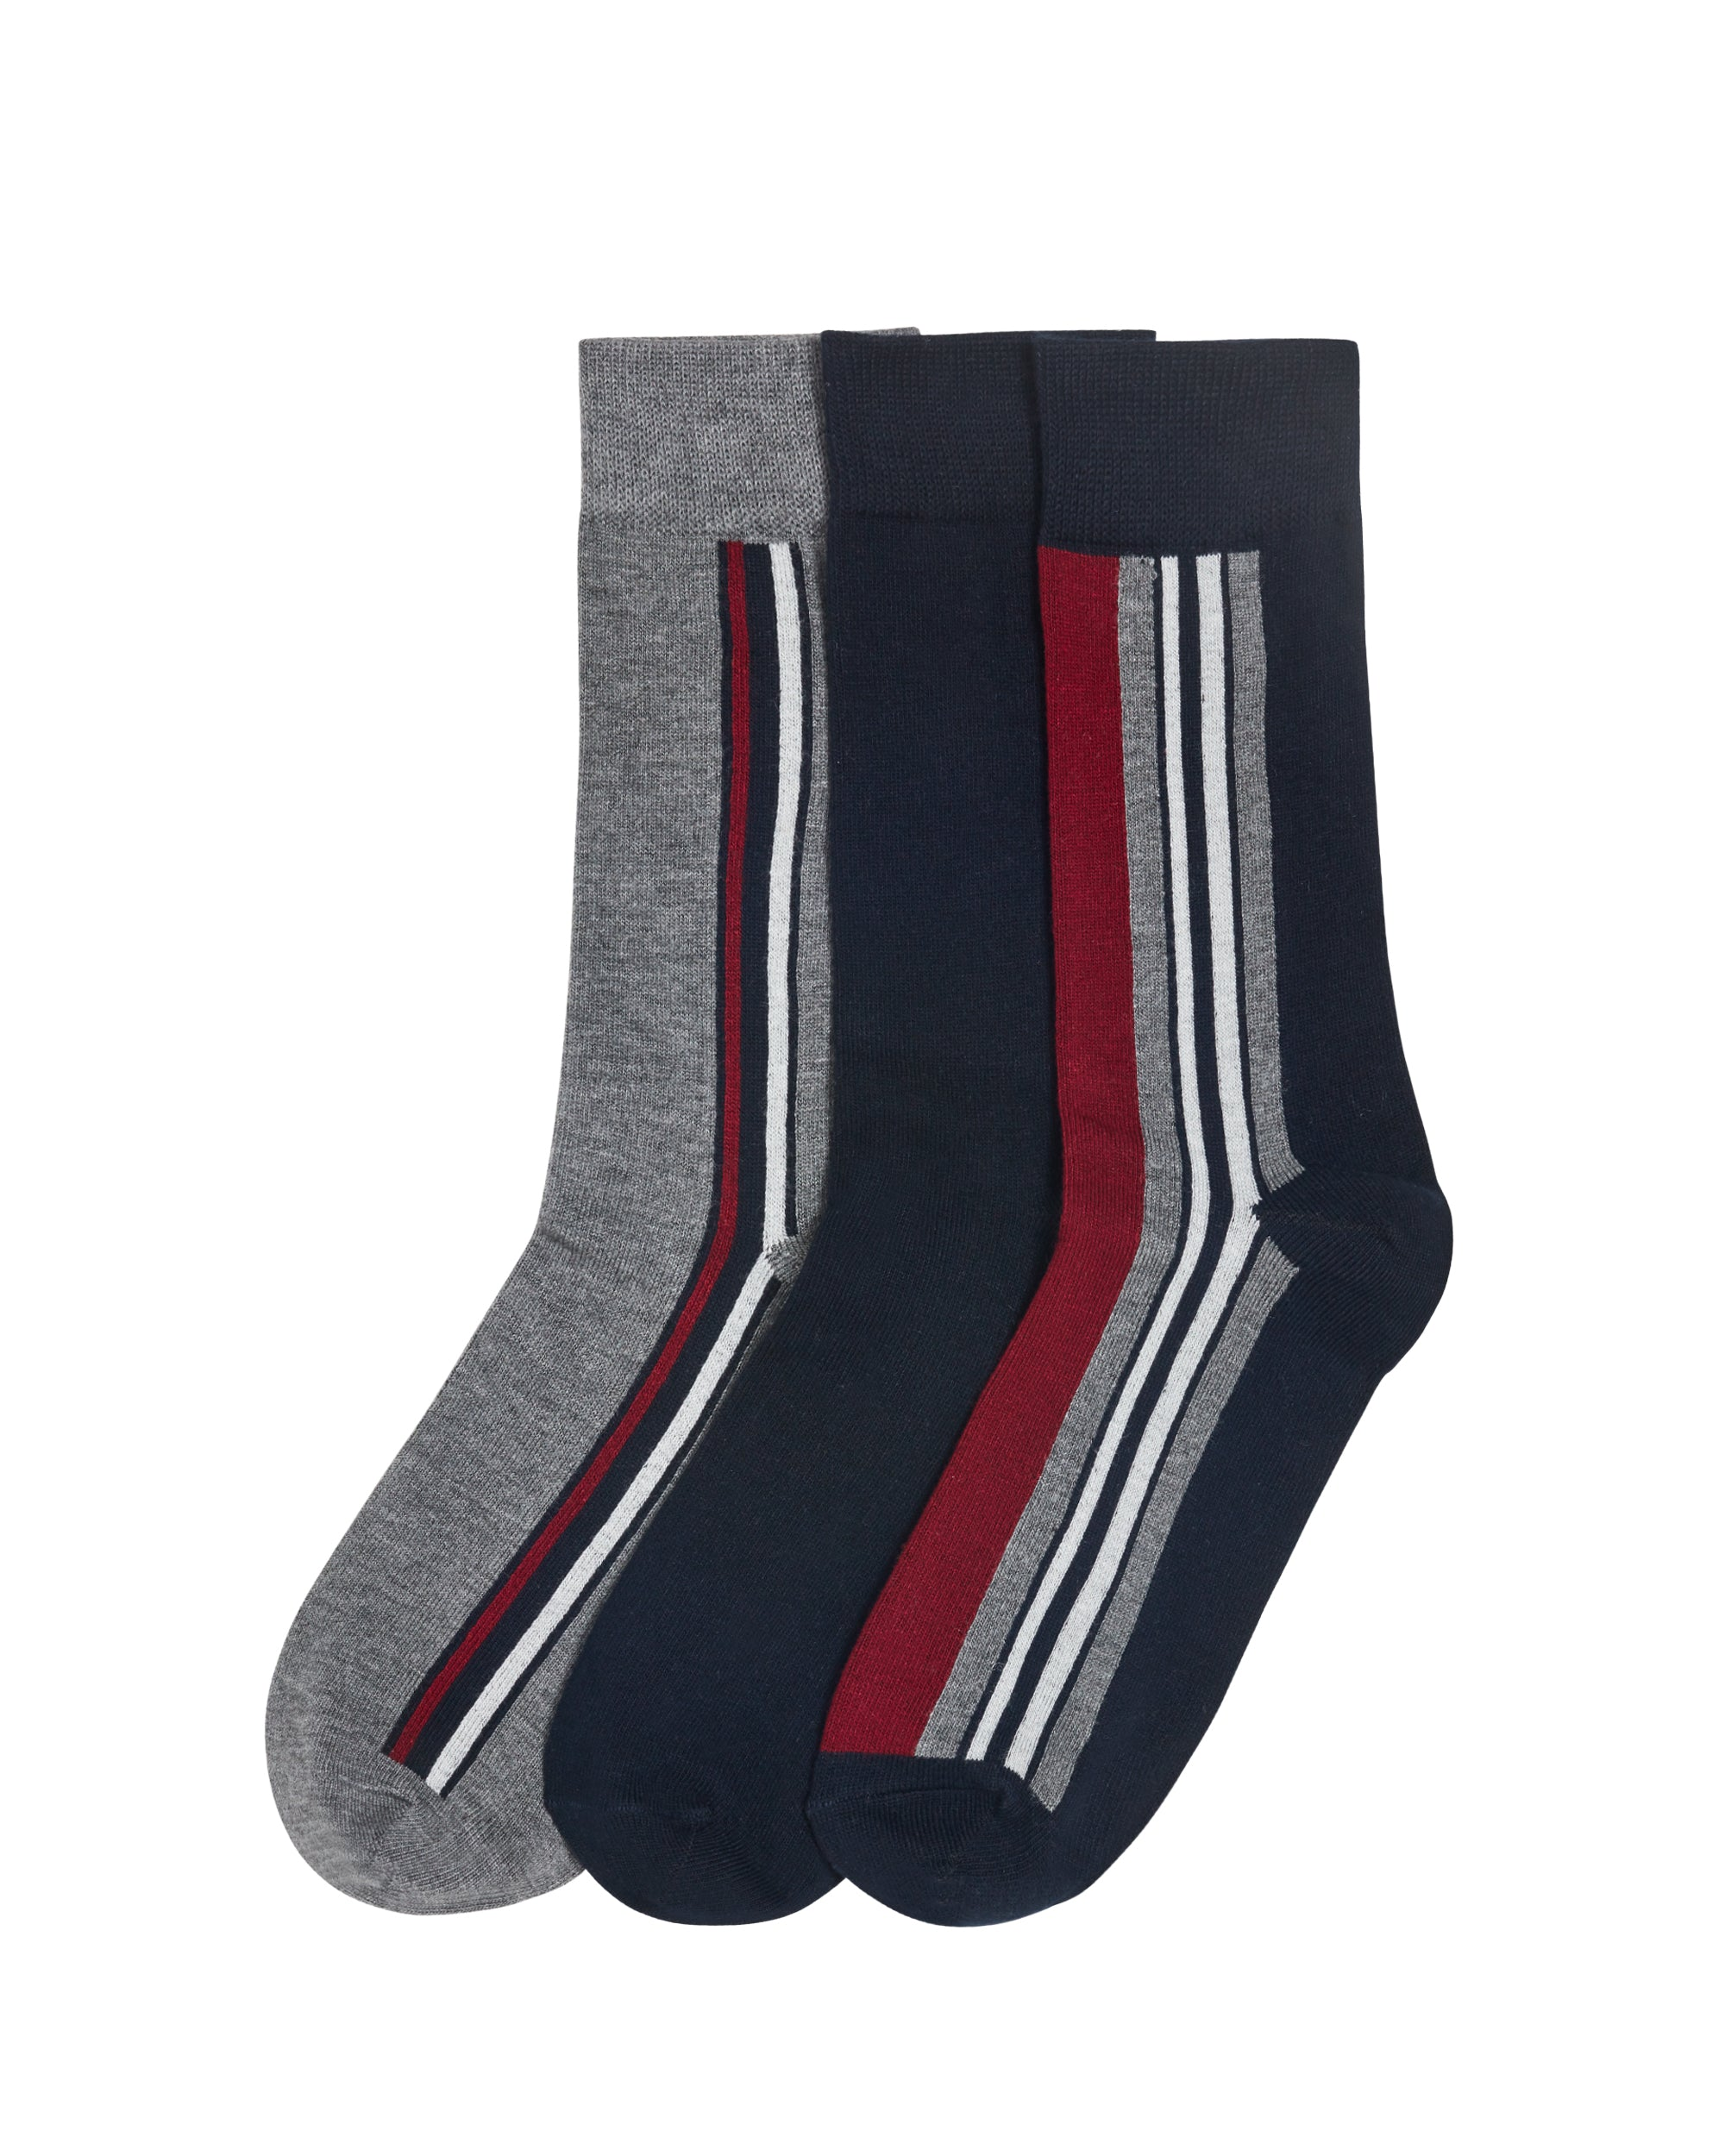 Grundy Men's 3-Pack Socks - Grey/Navy/Red Stripe